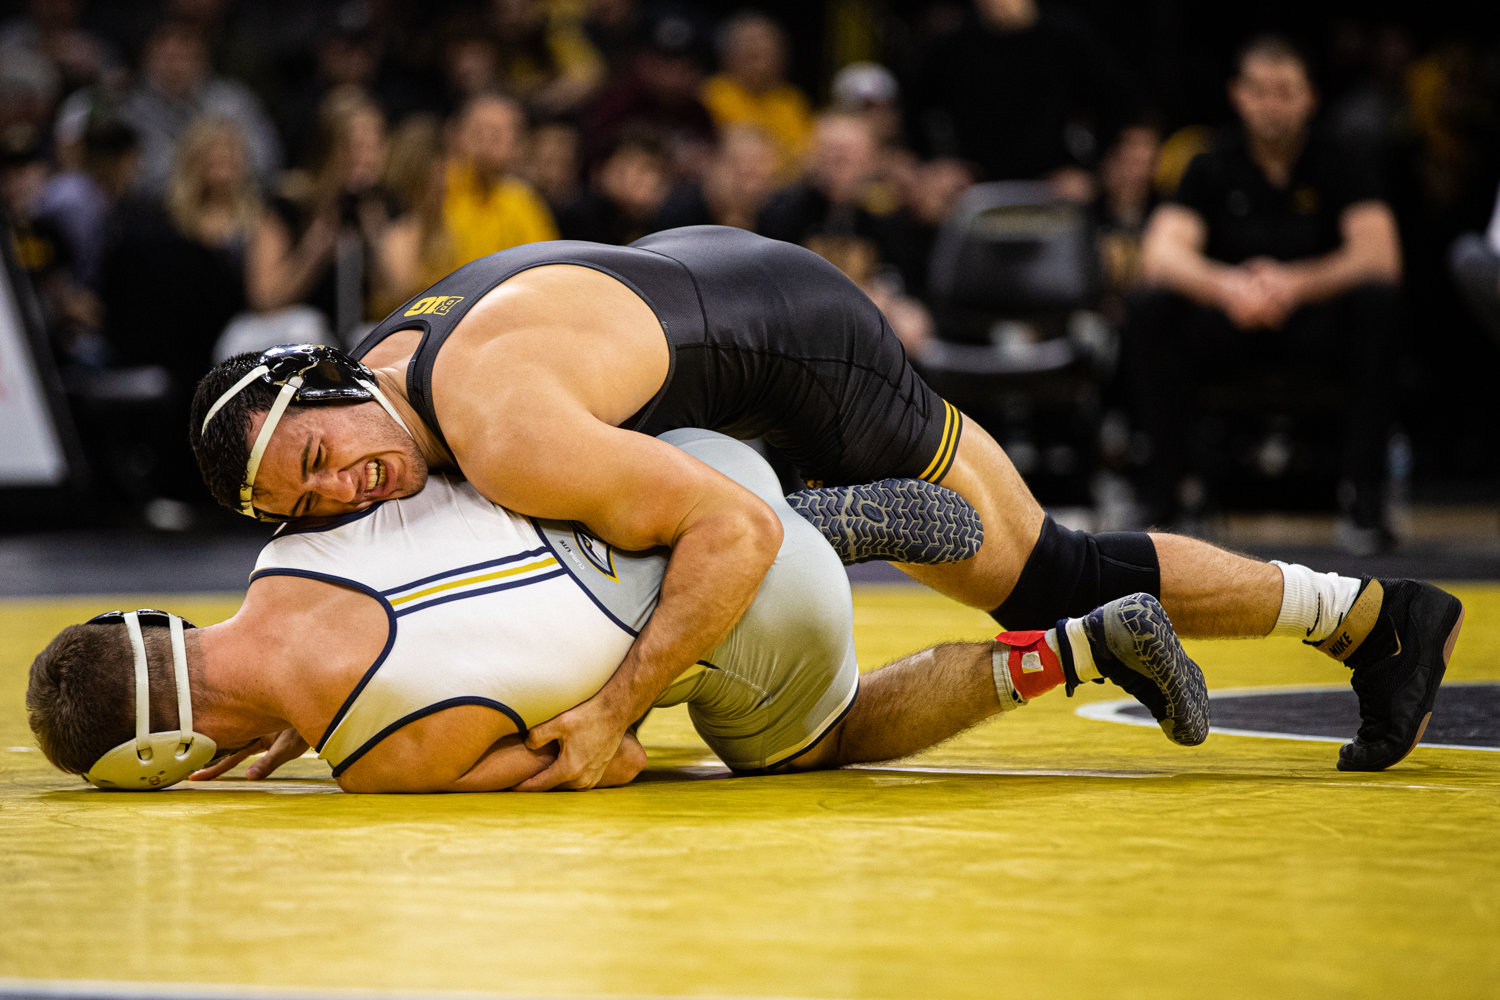 Iowa's 174-pound Michael Kemerer wrestles UTC's Hunter Fortner during a wrestling dual-meet between Iowa and Tennessee-Chattanooga at Carver-Hawkeye Arena on Sunday, Nov. 17, 2019. Kemerer won by technical fall, 20-0, and the Hawkeyes defeated the Mocs, 39-0. (Shivansh Ahuja/The Daily Iowan)